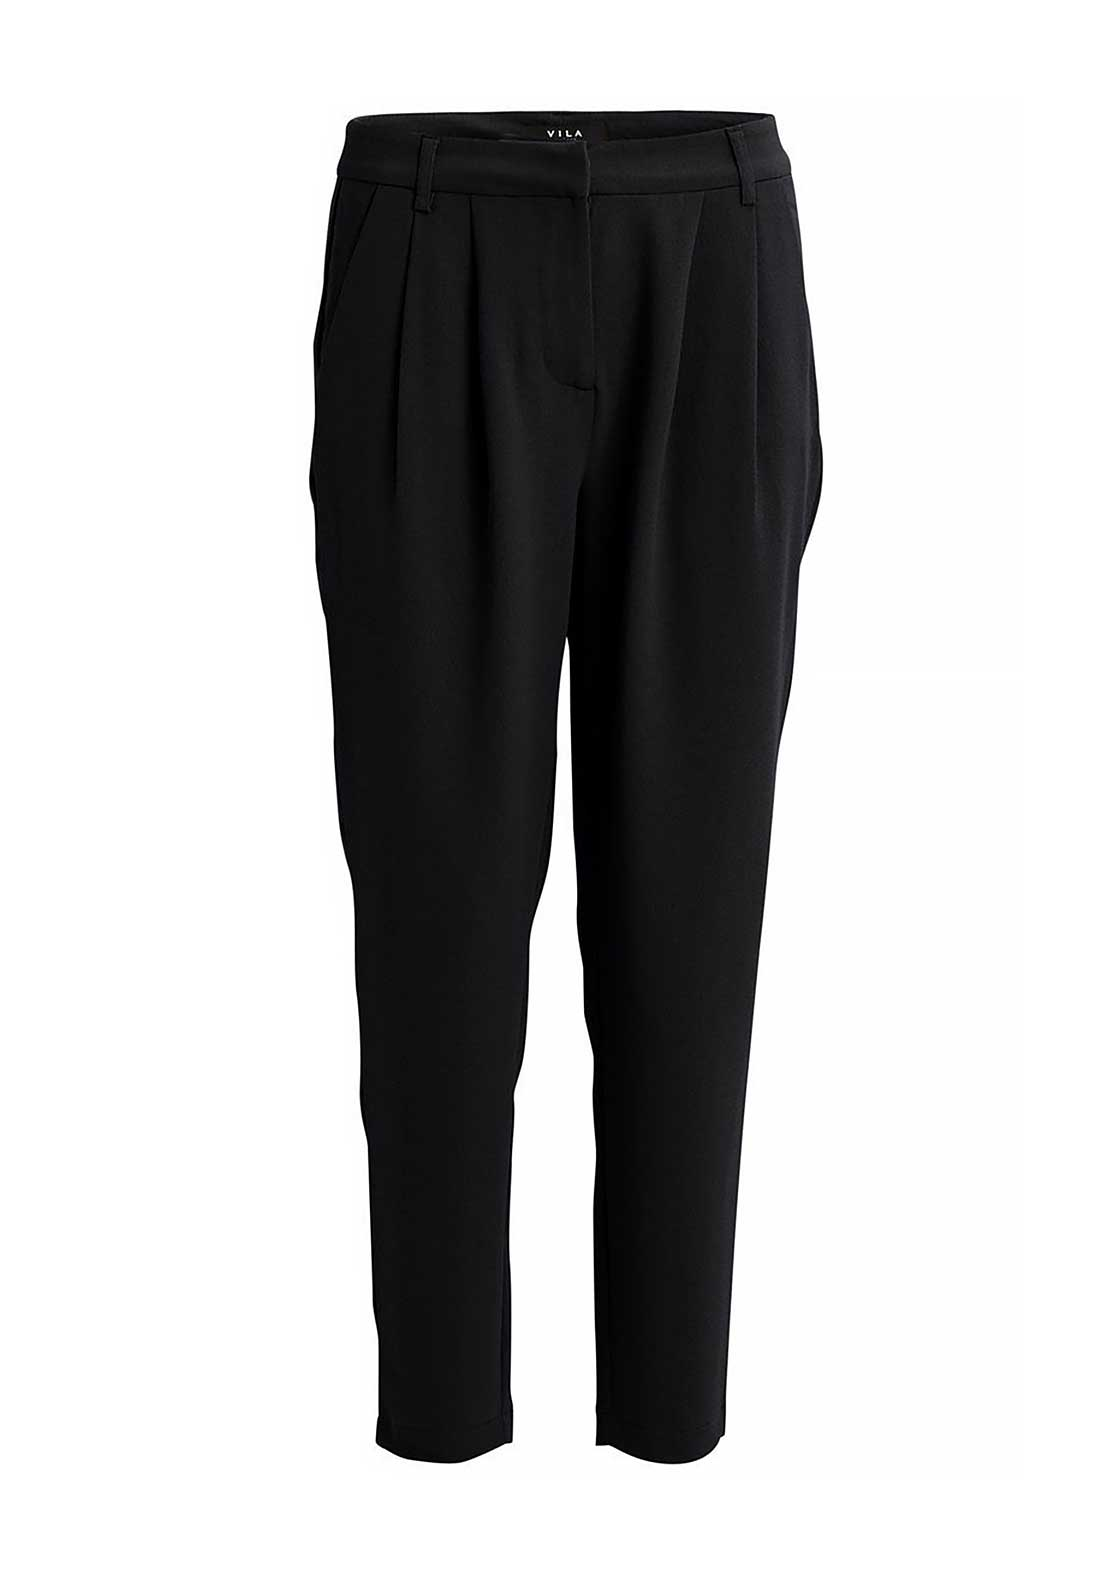 Vila Fera 7/8 Length Tapered Trousers, Black